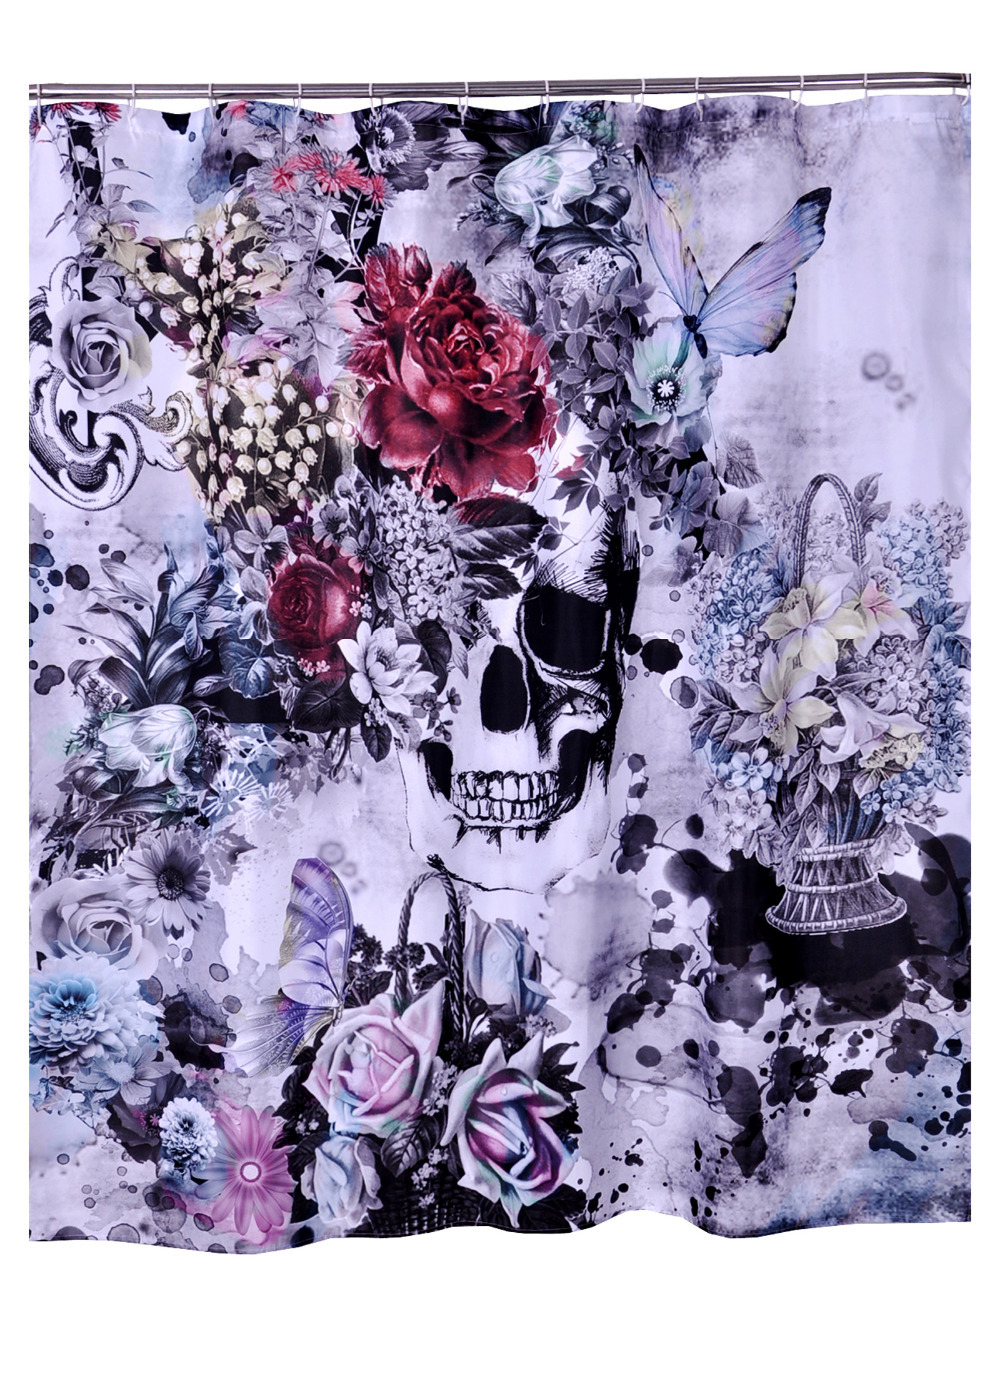 Majestic Bathroom Products Polyester Fabric Printed Flower Skull Butterfly Showercurtains Liner Waterproof Washable Curtaion Shower Curtains Fromhome Bathroom Products Polyester Fabric Printed Flower